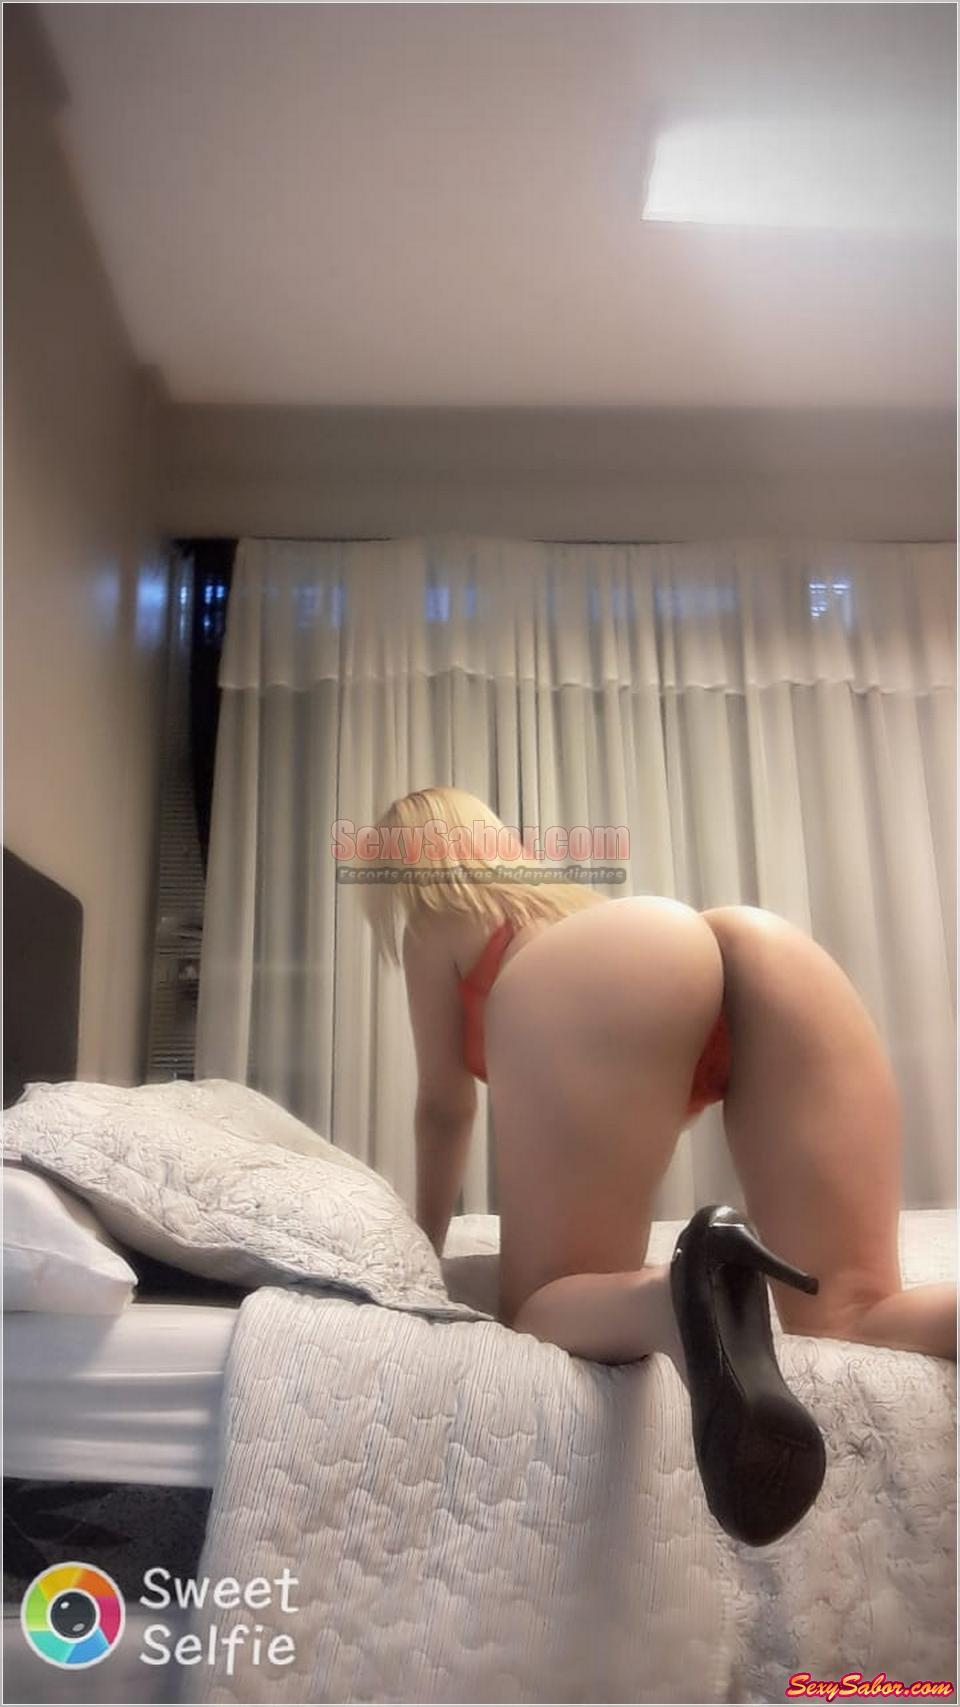 Sole 15-3403-0856